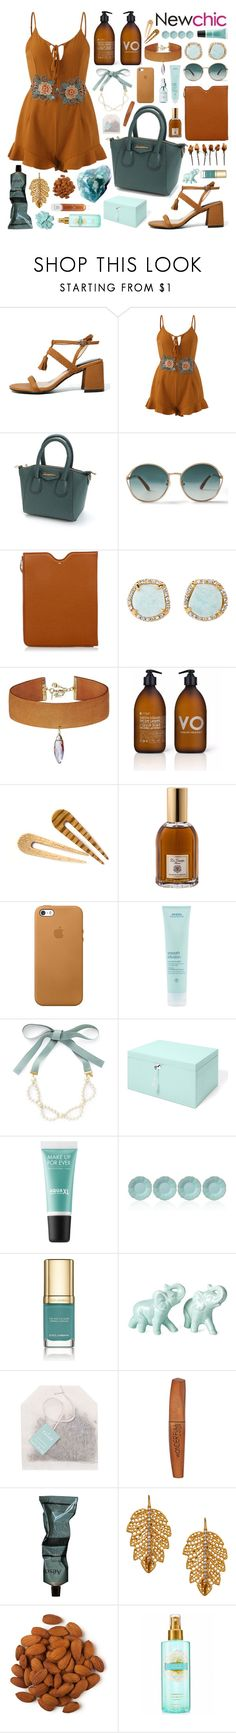 """trouble is a friend and trouble is a foe // fashion set"" by gabriella-houck on Polyvore featuring TOMS, Maison Margiela, Louise et Cie, Vanessa Mooney, La Compagnie de Provence, Dr. Vranjes, Aveda, MAKE UP FOR EVER, Lenox and Dolce&Gabbana"